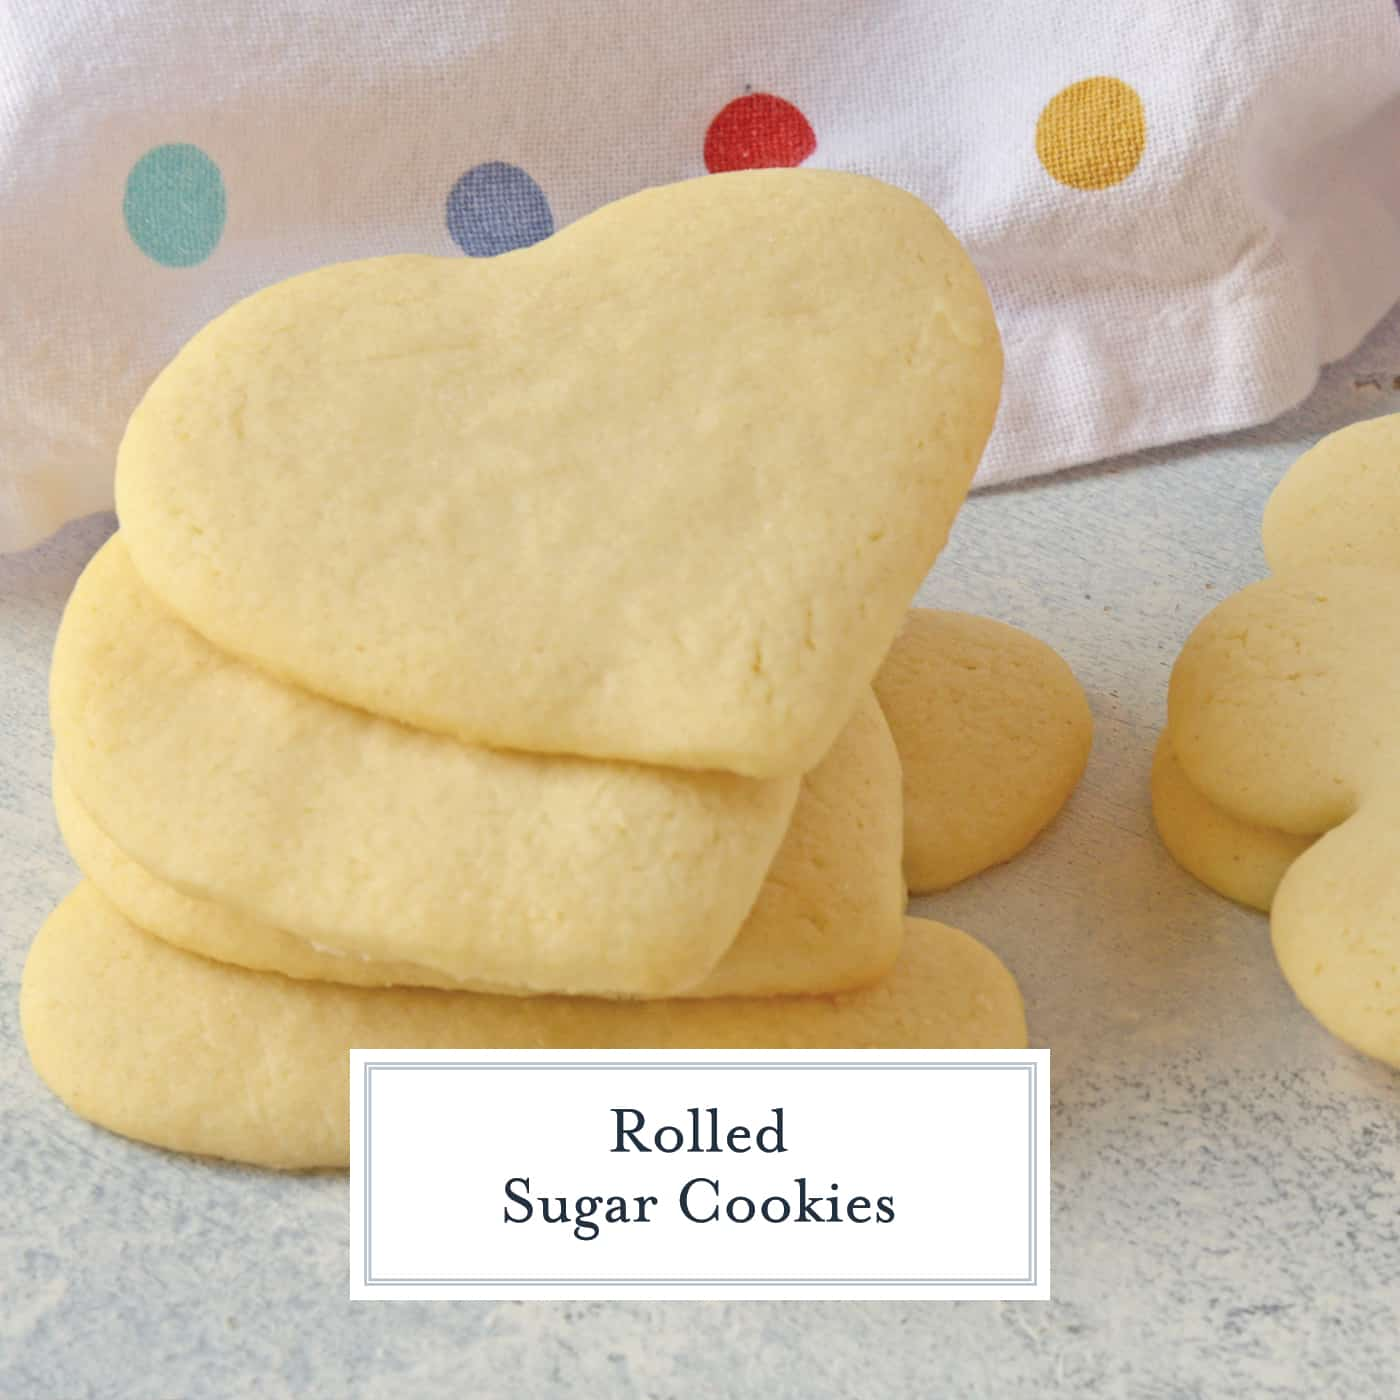 The best sugar cookie dough recipe for Rolled Sugar Cookies out there! Won't lose shape when baked, great flavor and easy to make and roll out! #rolledsugarcookies #sugarcookiecutoutrecipe #homemadesugarcookies www.savoryexperiments.com